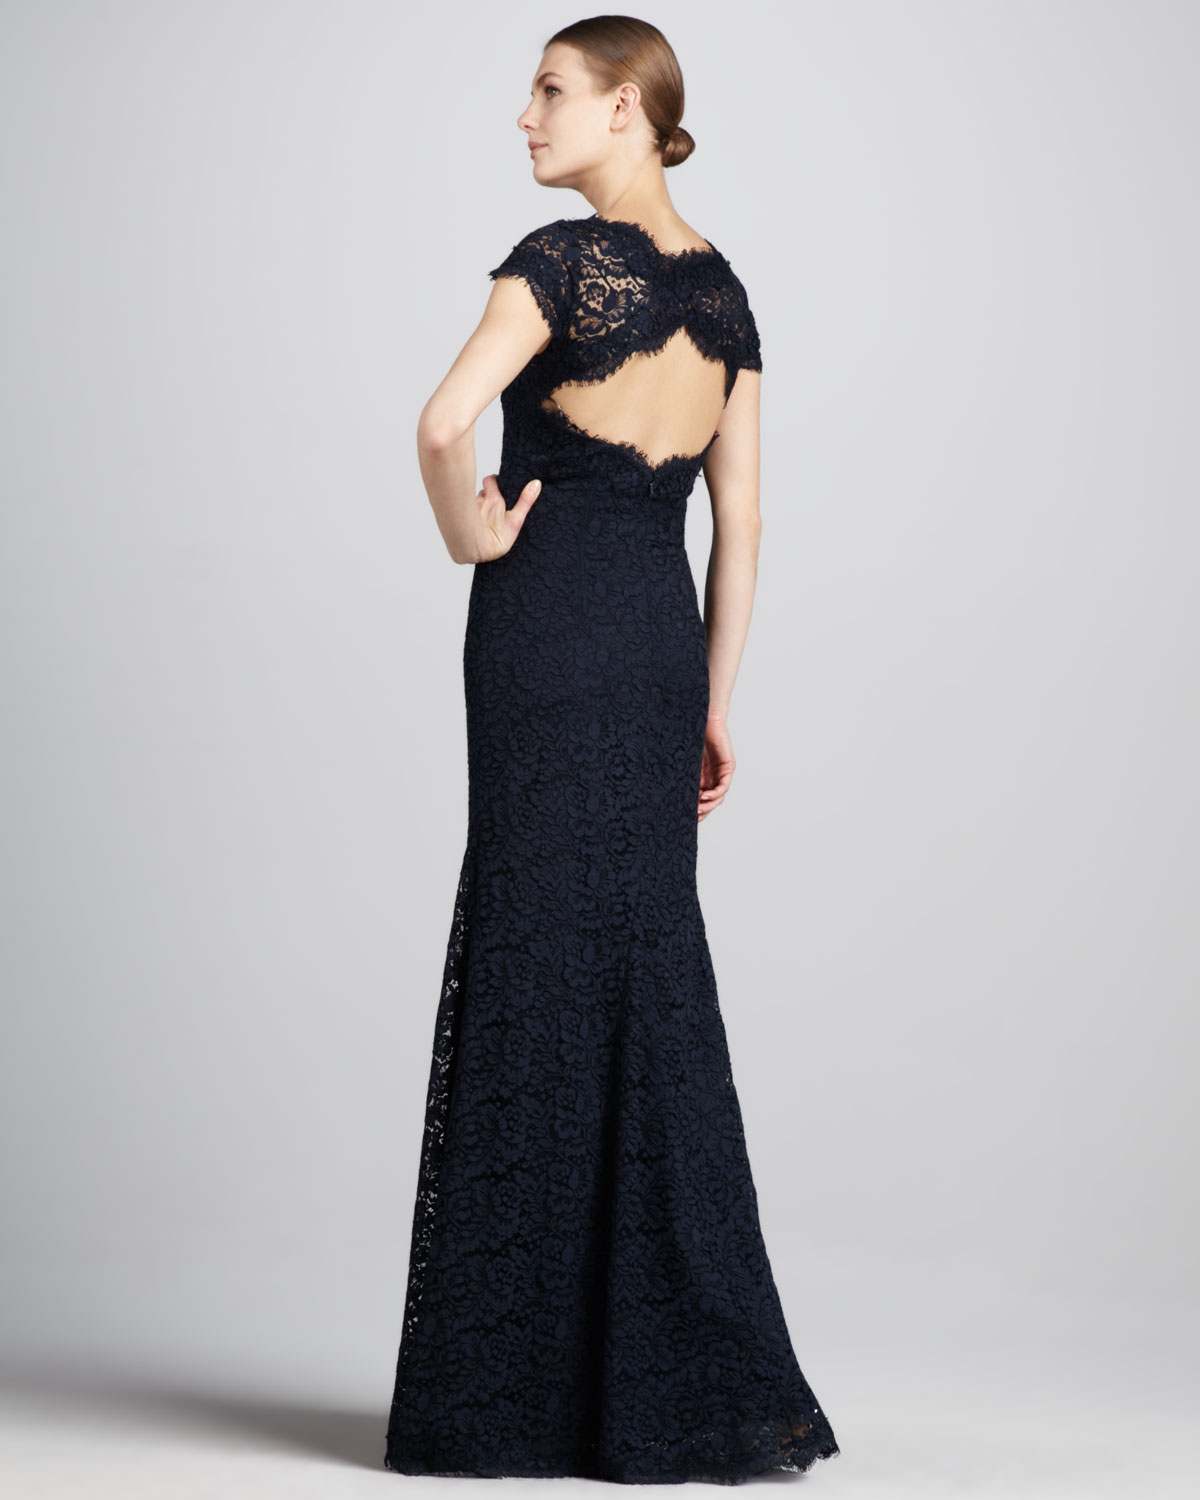 Lyst - Ml monique lhuillier Openback Lace Gown in Black